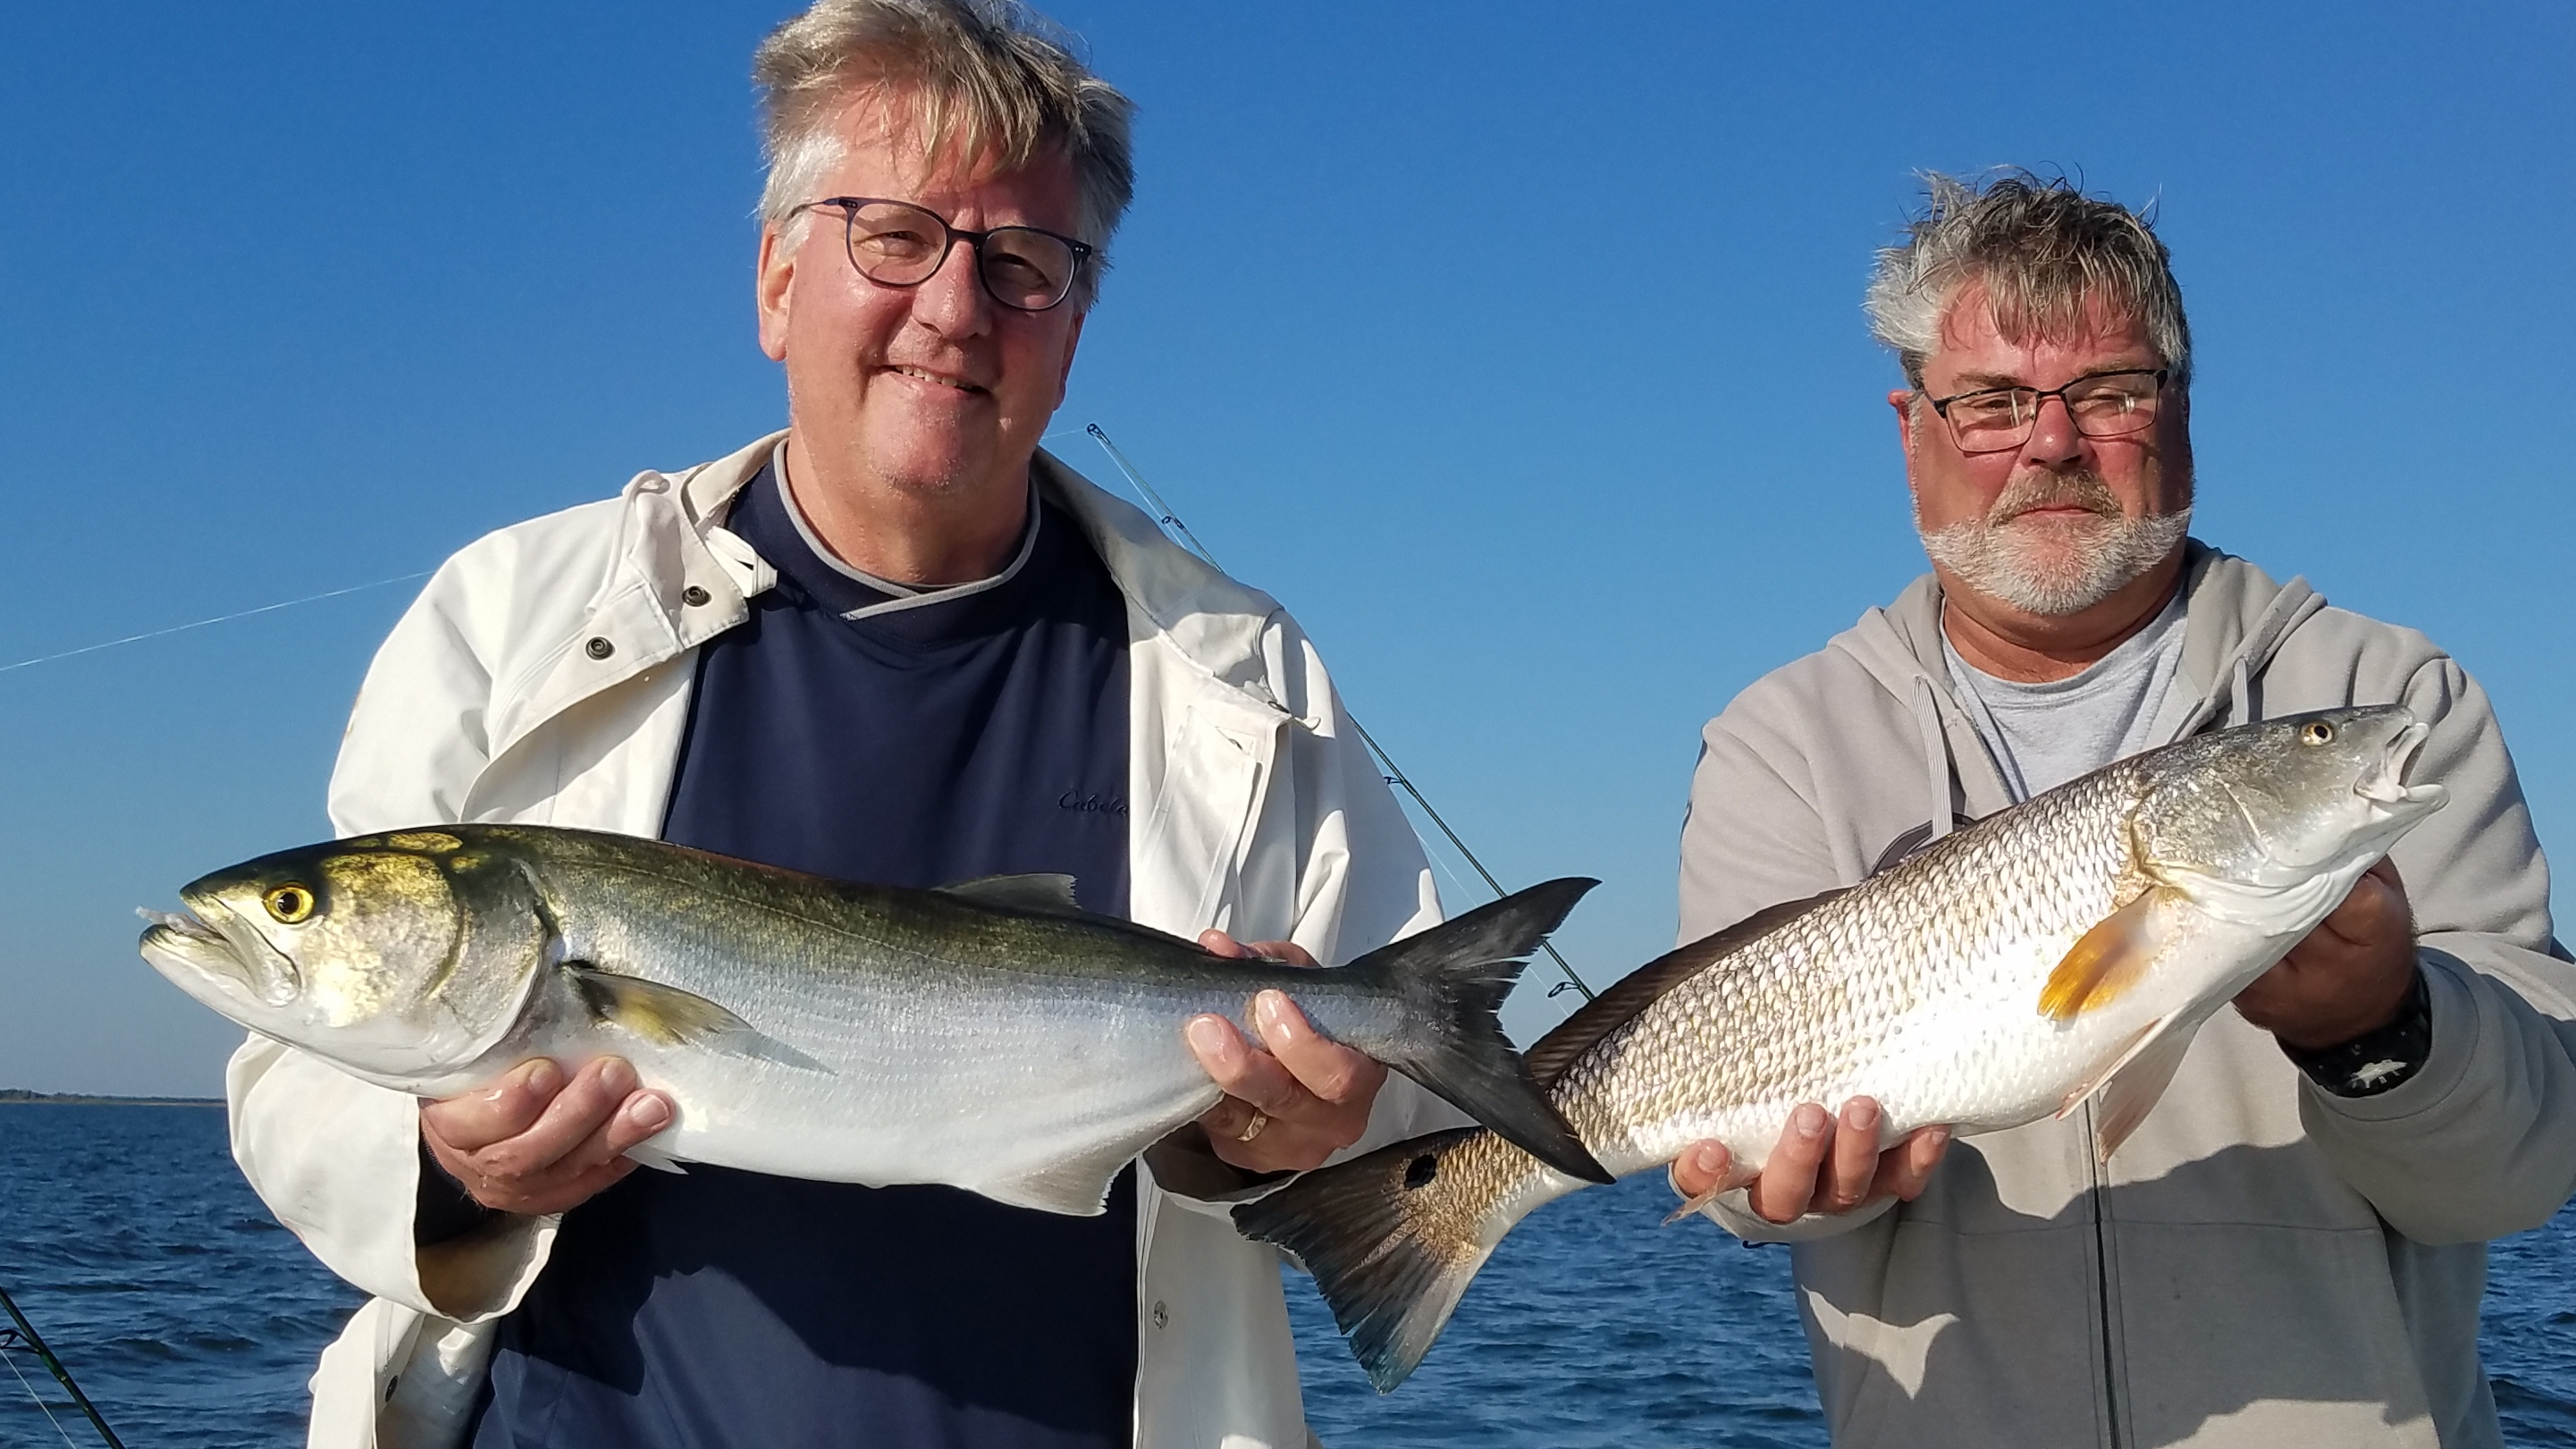 Speck-Tackler Inshore Fishing Charters Hatteras Teach's